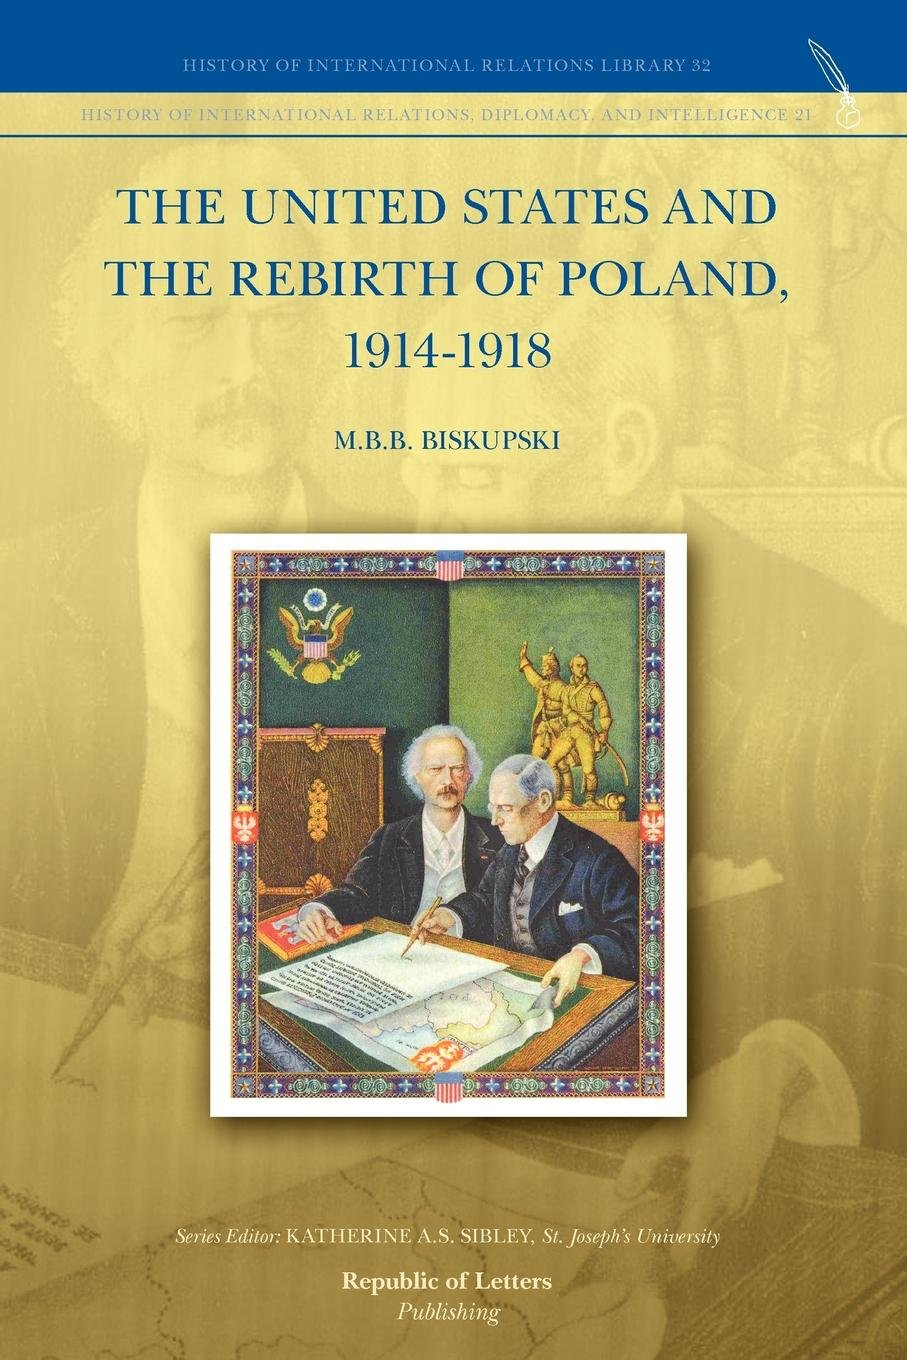 The United States and the Rebirth of Poland, 1914-1918 by Brand: Republic of Letters